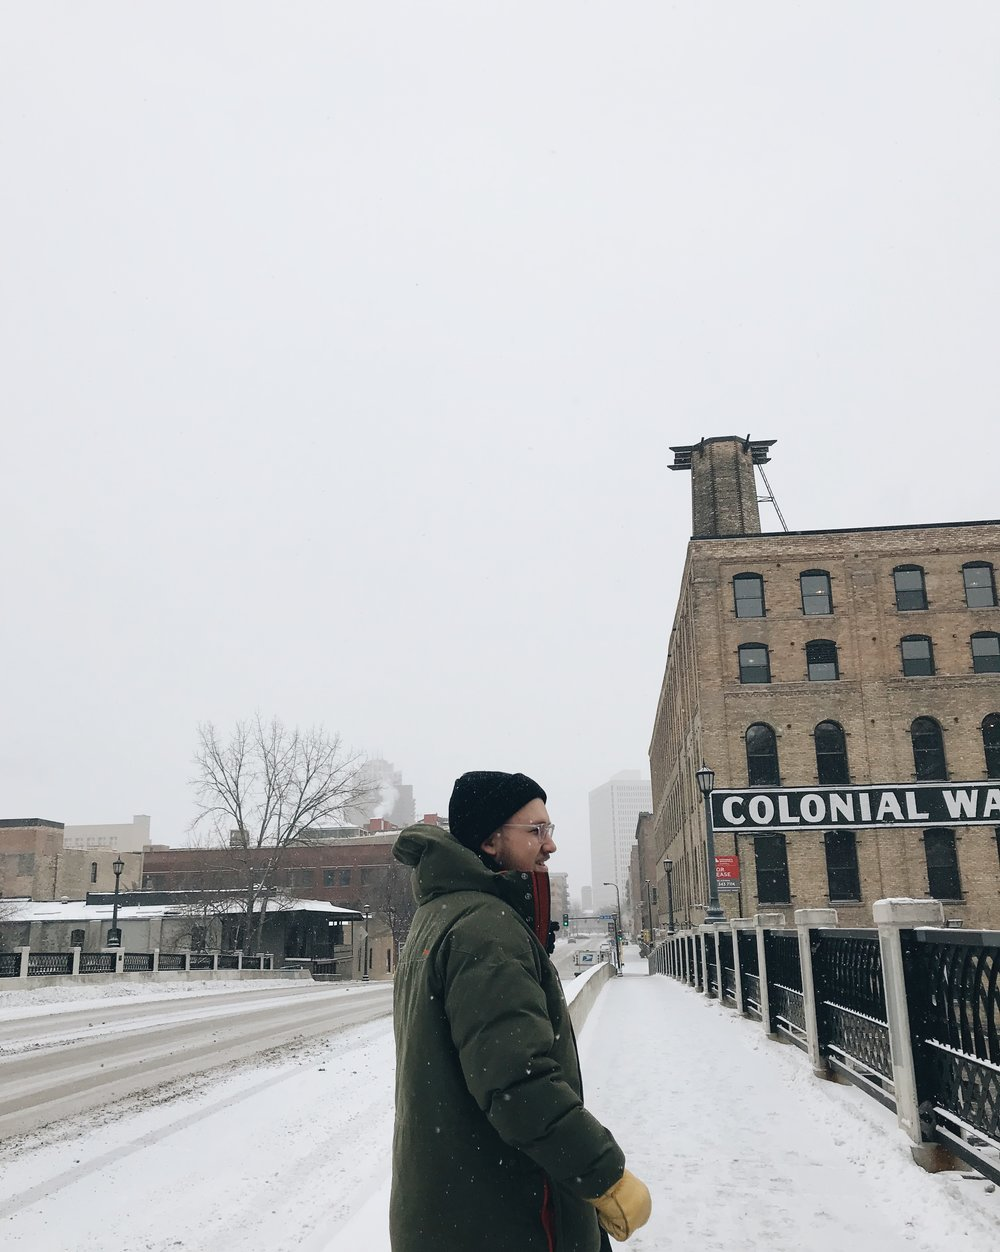 December, 29th, 2017 - spent one of the last days of 2017, getting brunch, drinking coffee and shopping around downtown Minneapolis on a snowy day. It felt like a dream.